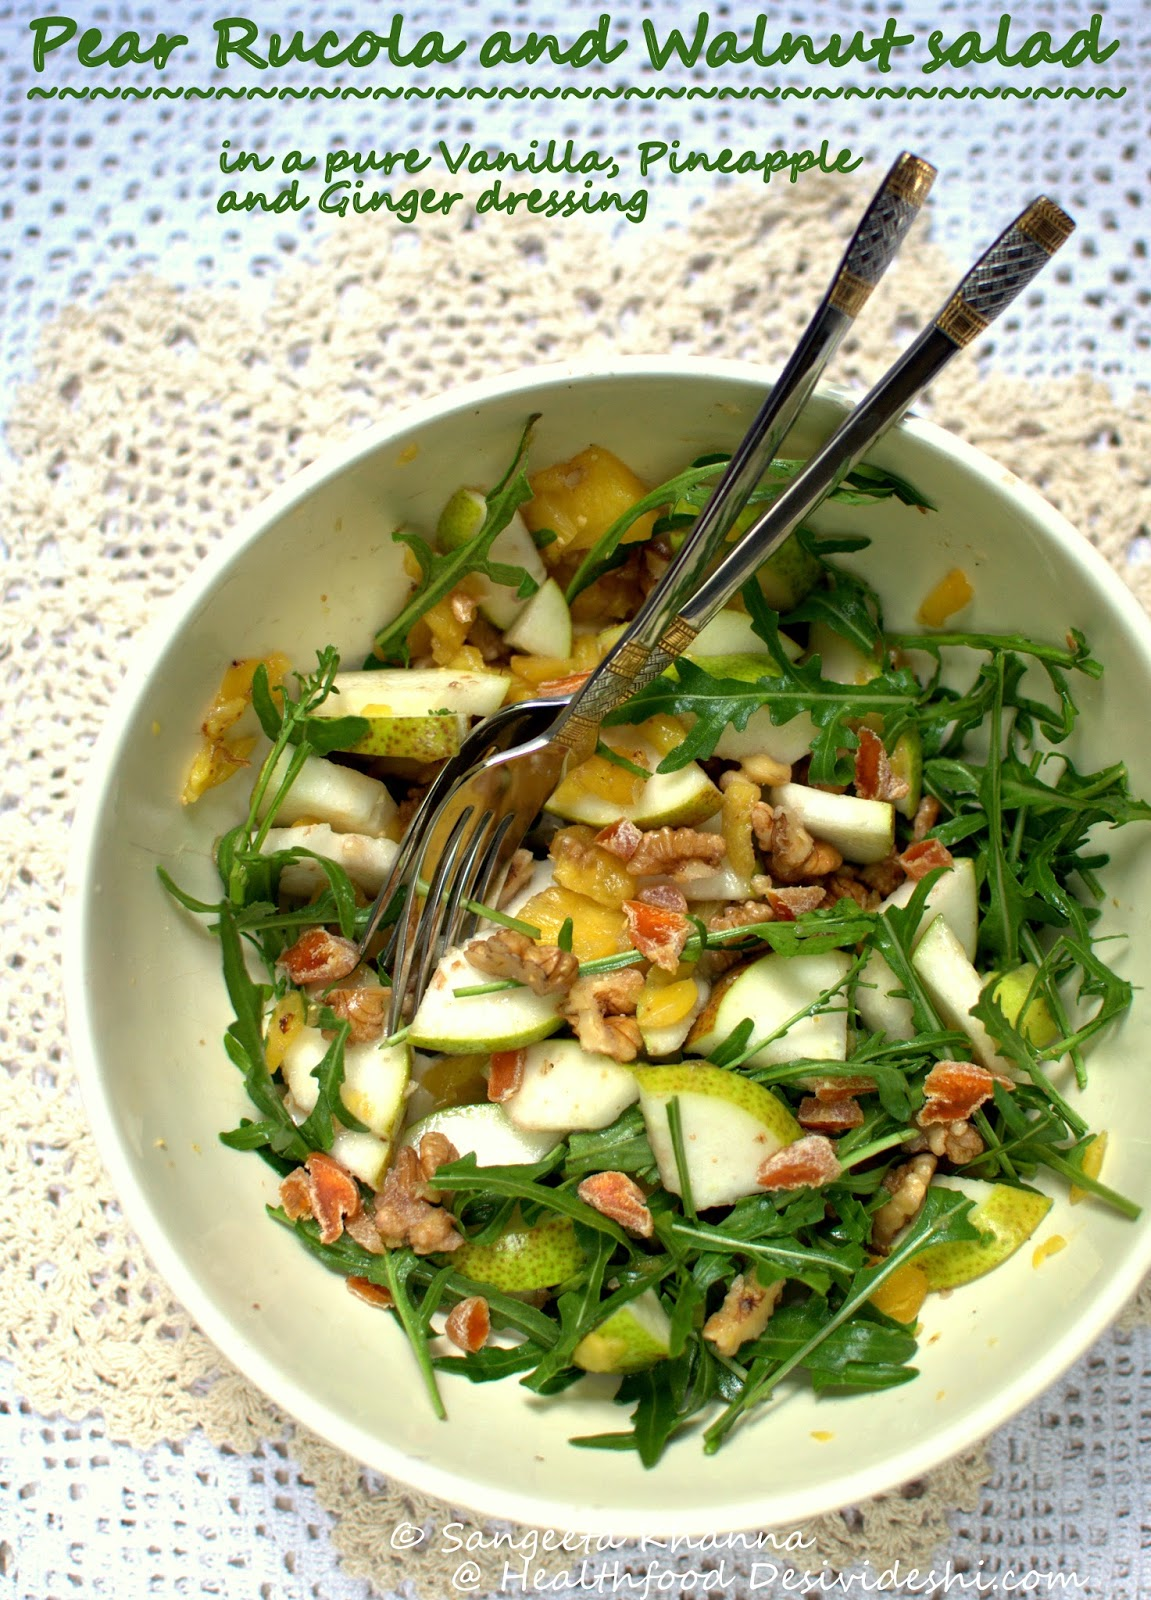 pear rucola and walnuts salad in pineapple vanilla dressing healthfooddesivideshi. Black Bedroom Furniture Sets. Home Design Ideas